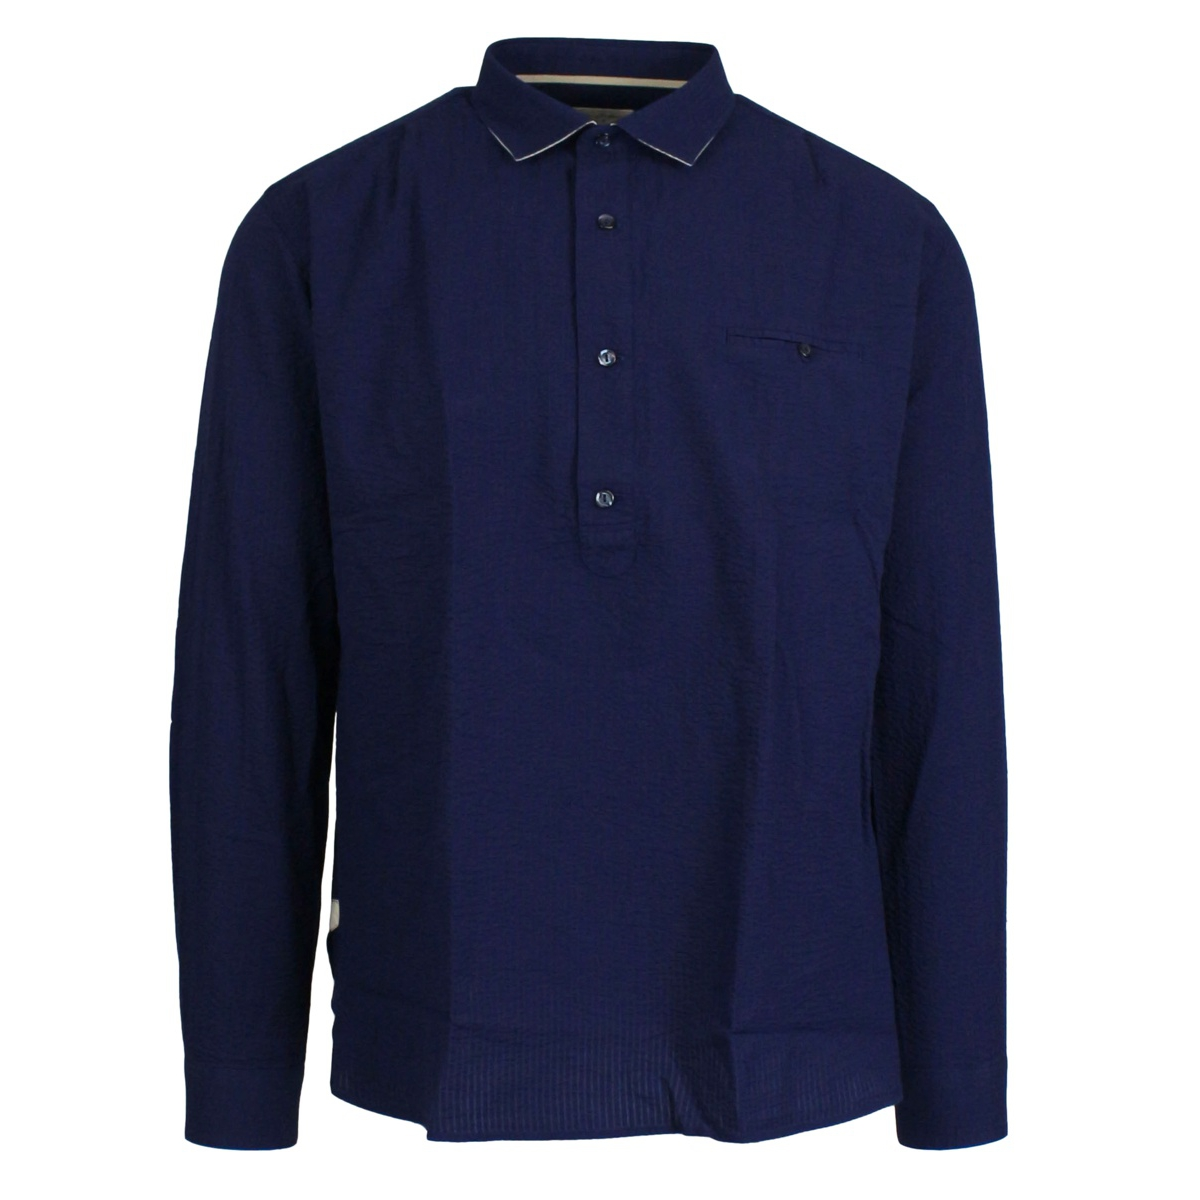 Shirt with French collar and breast pocket Ink TINTORIA MATTEI